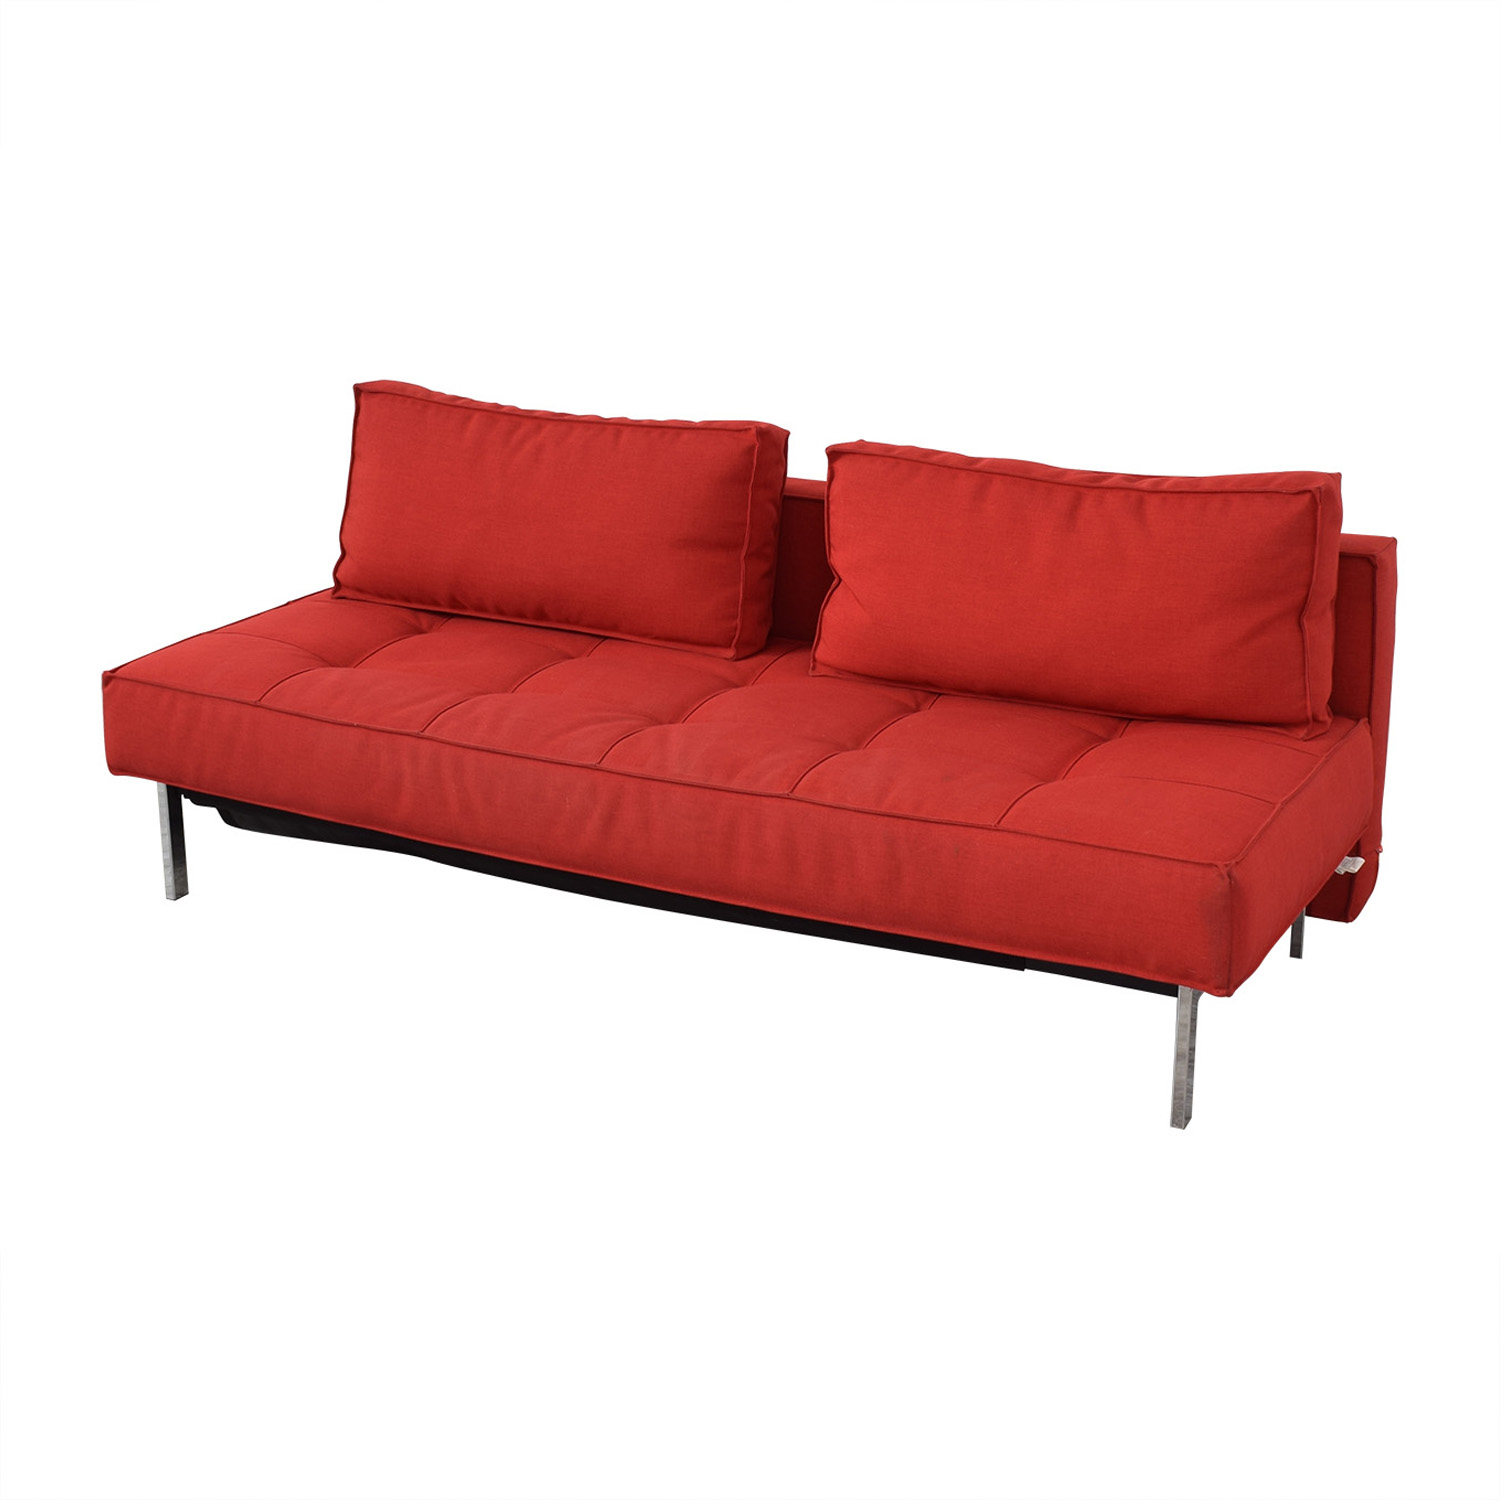 buy Innovation Living Innovation Living Red Tufted Twin Sleeper Sofa online